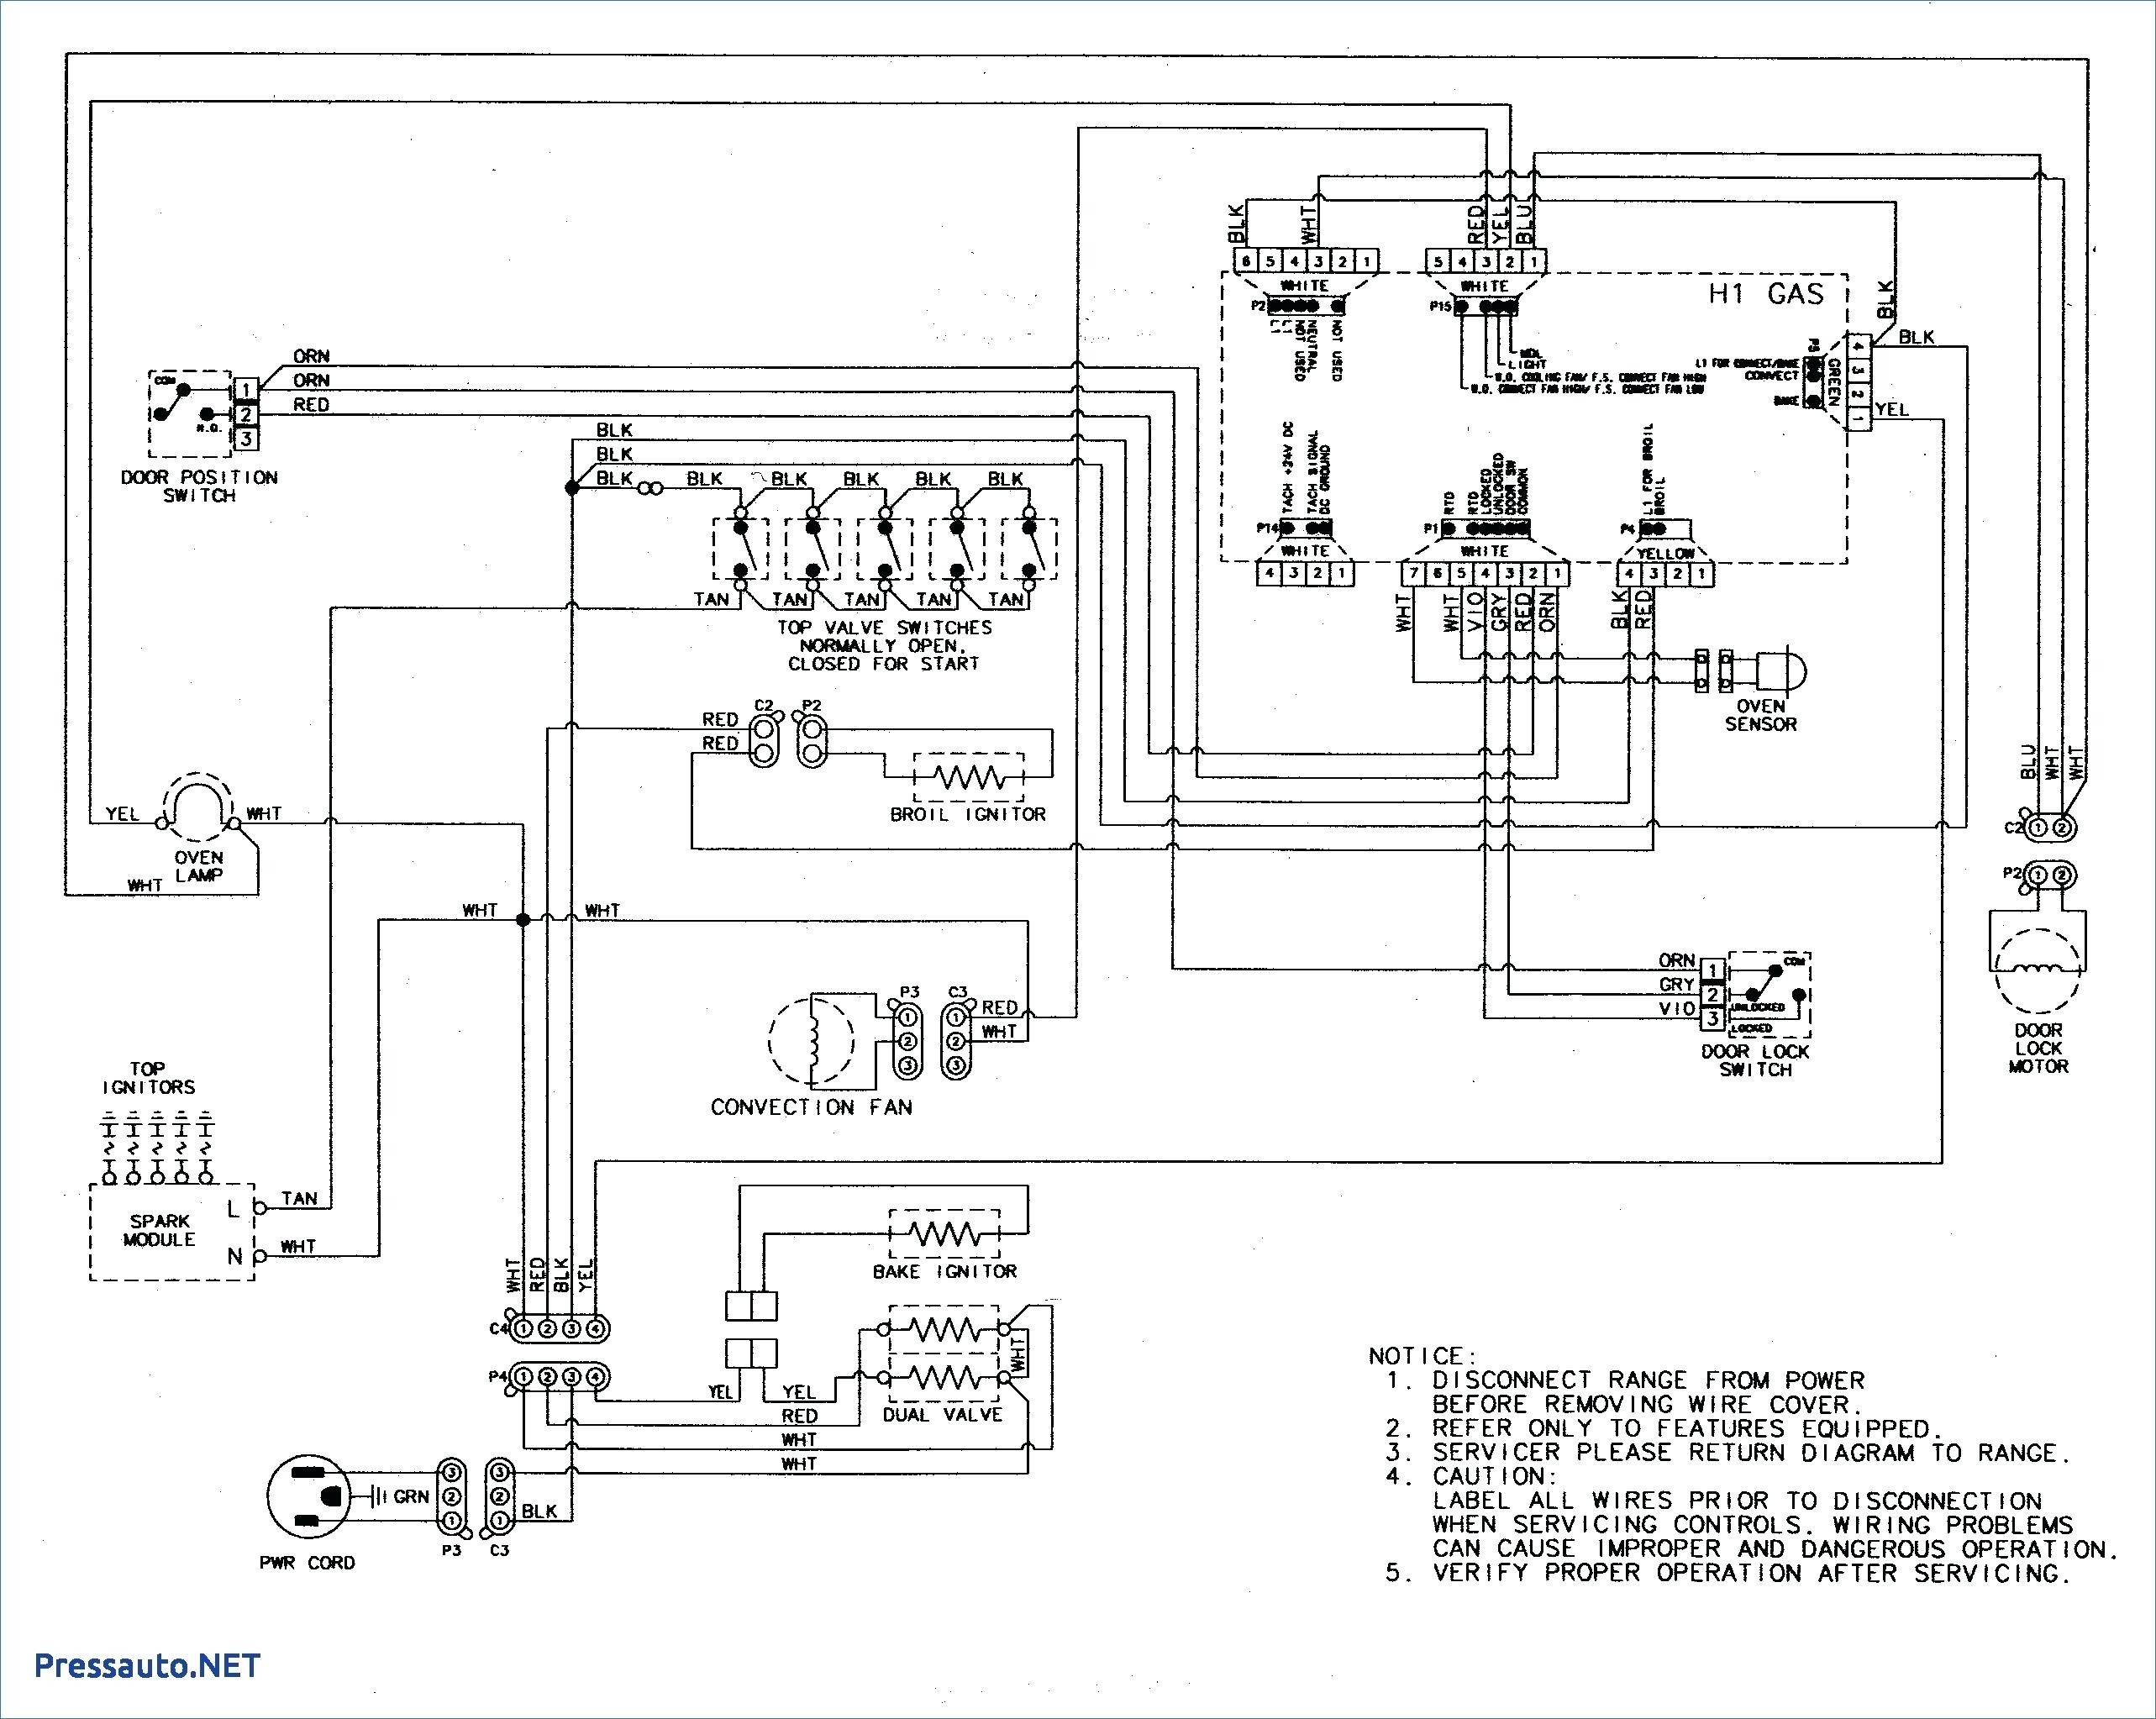 Car Ac System Diagram Car Diagram Car Diagram Wiring for Auto Air Conditioning New Pdf Of Car Ac System Diagram